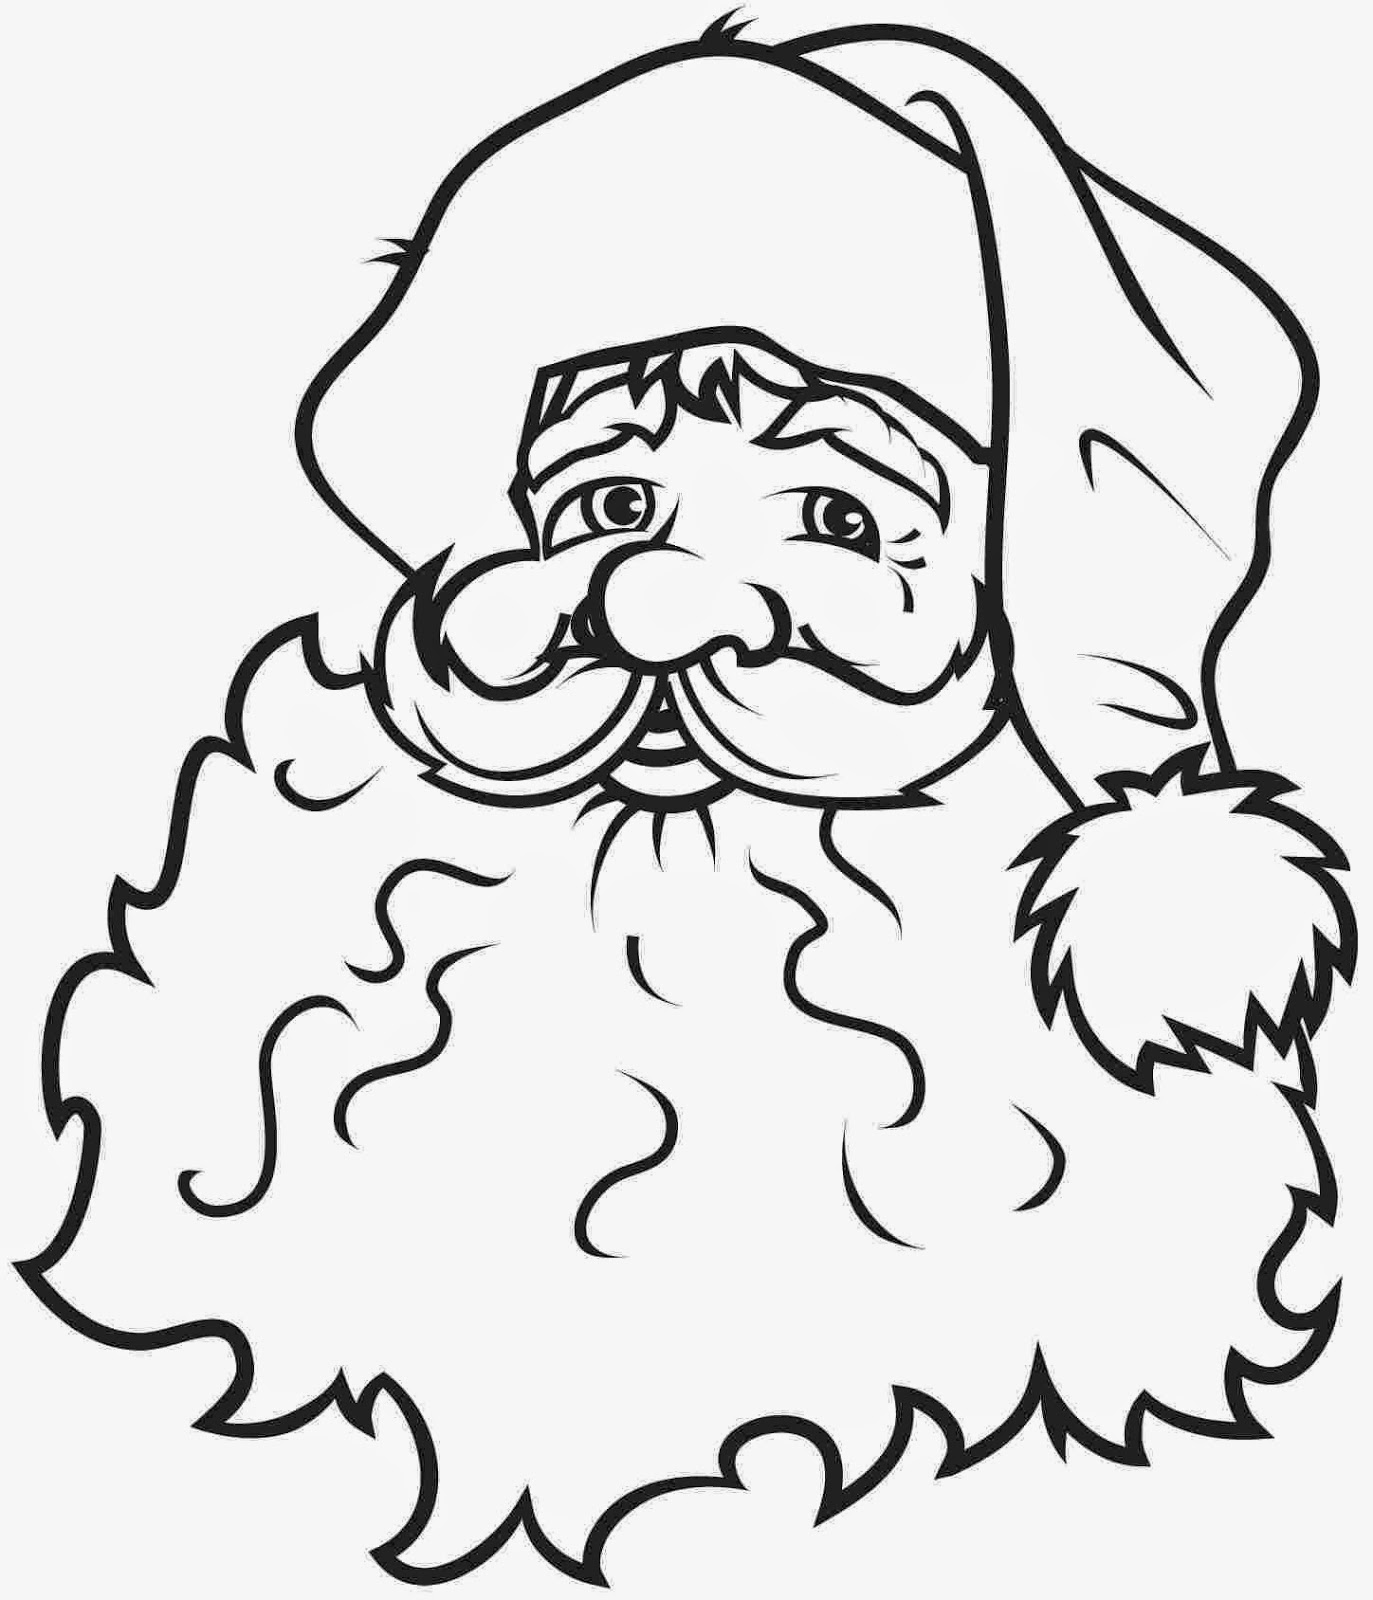 santa claus printable coloring pages free christmas colouring pages for children kids online coloring printable pages santa claus